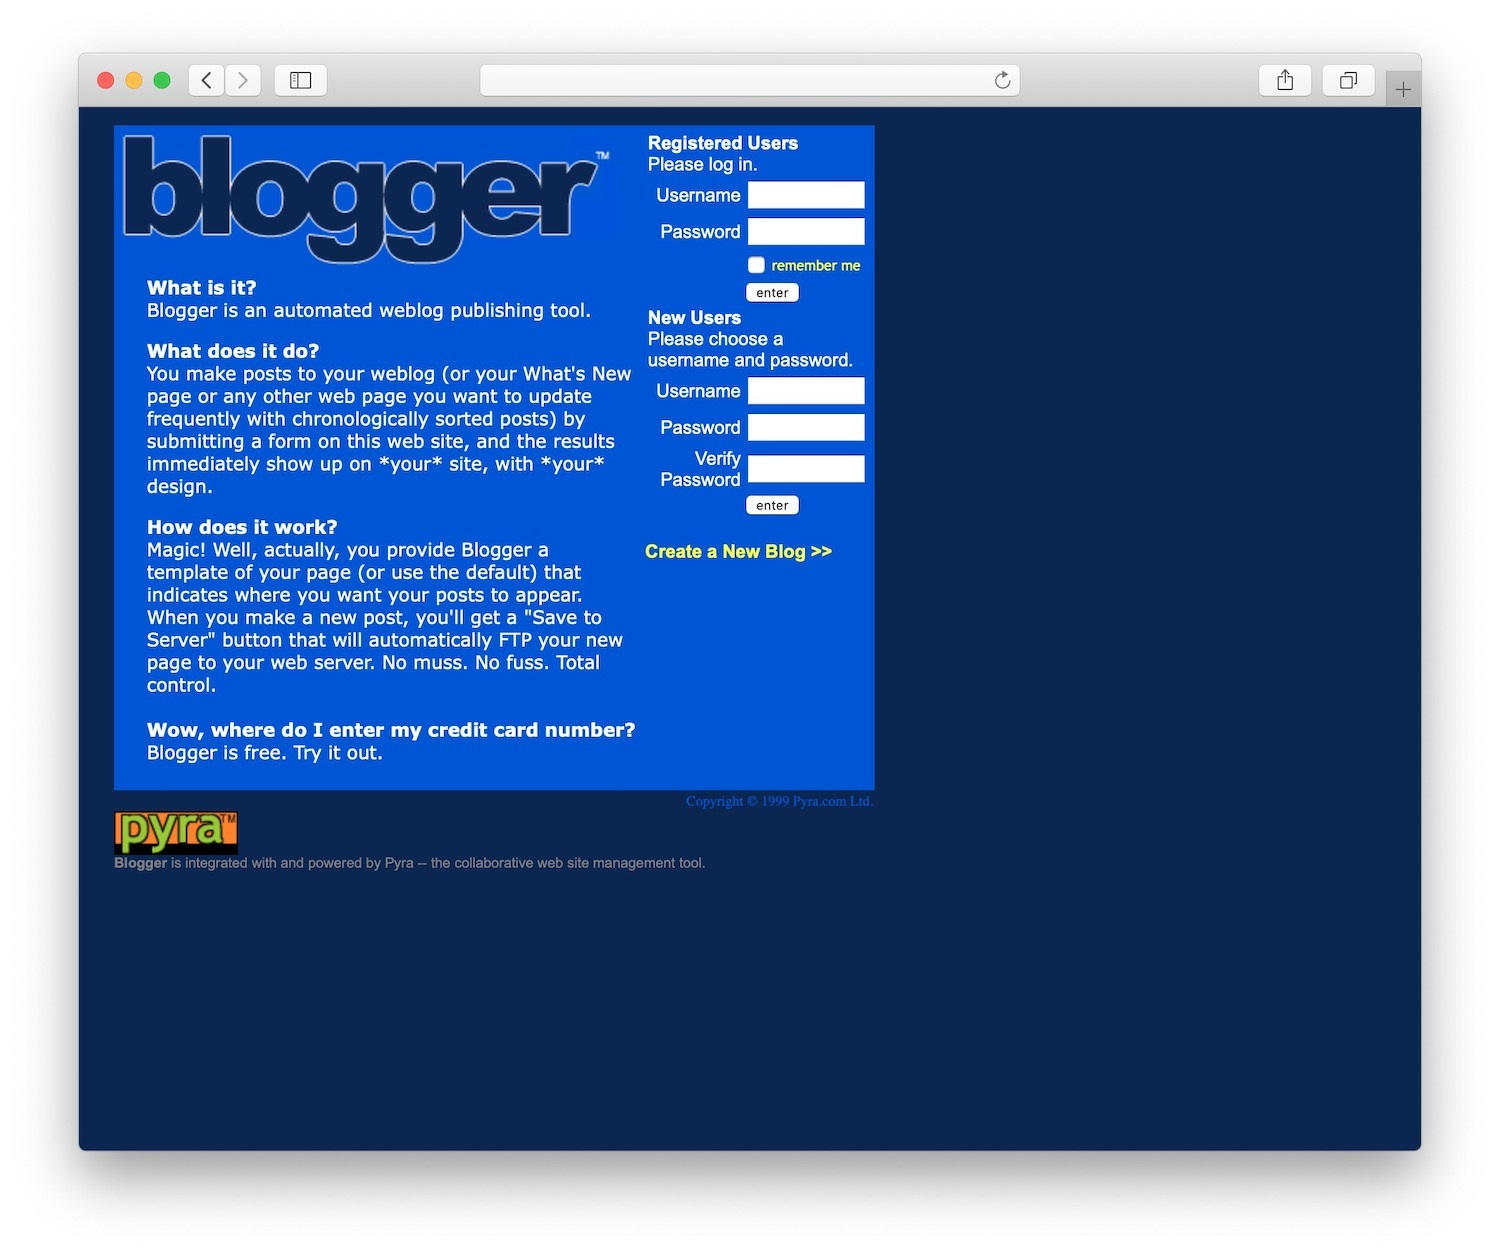 blogger was a blogging platform acquired by Google